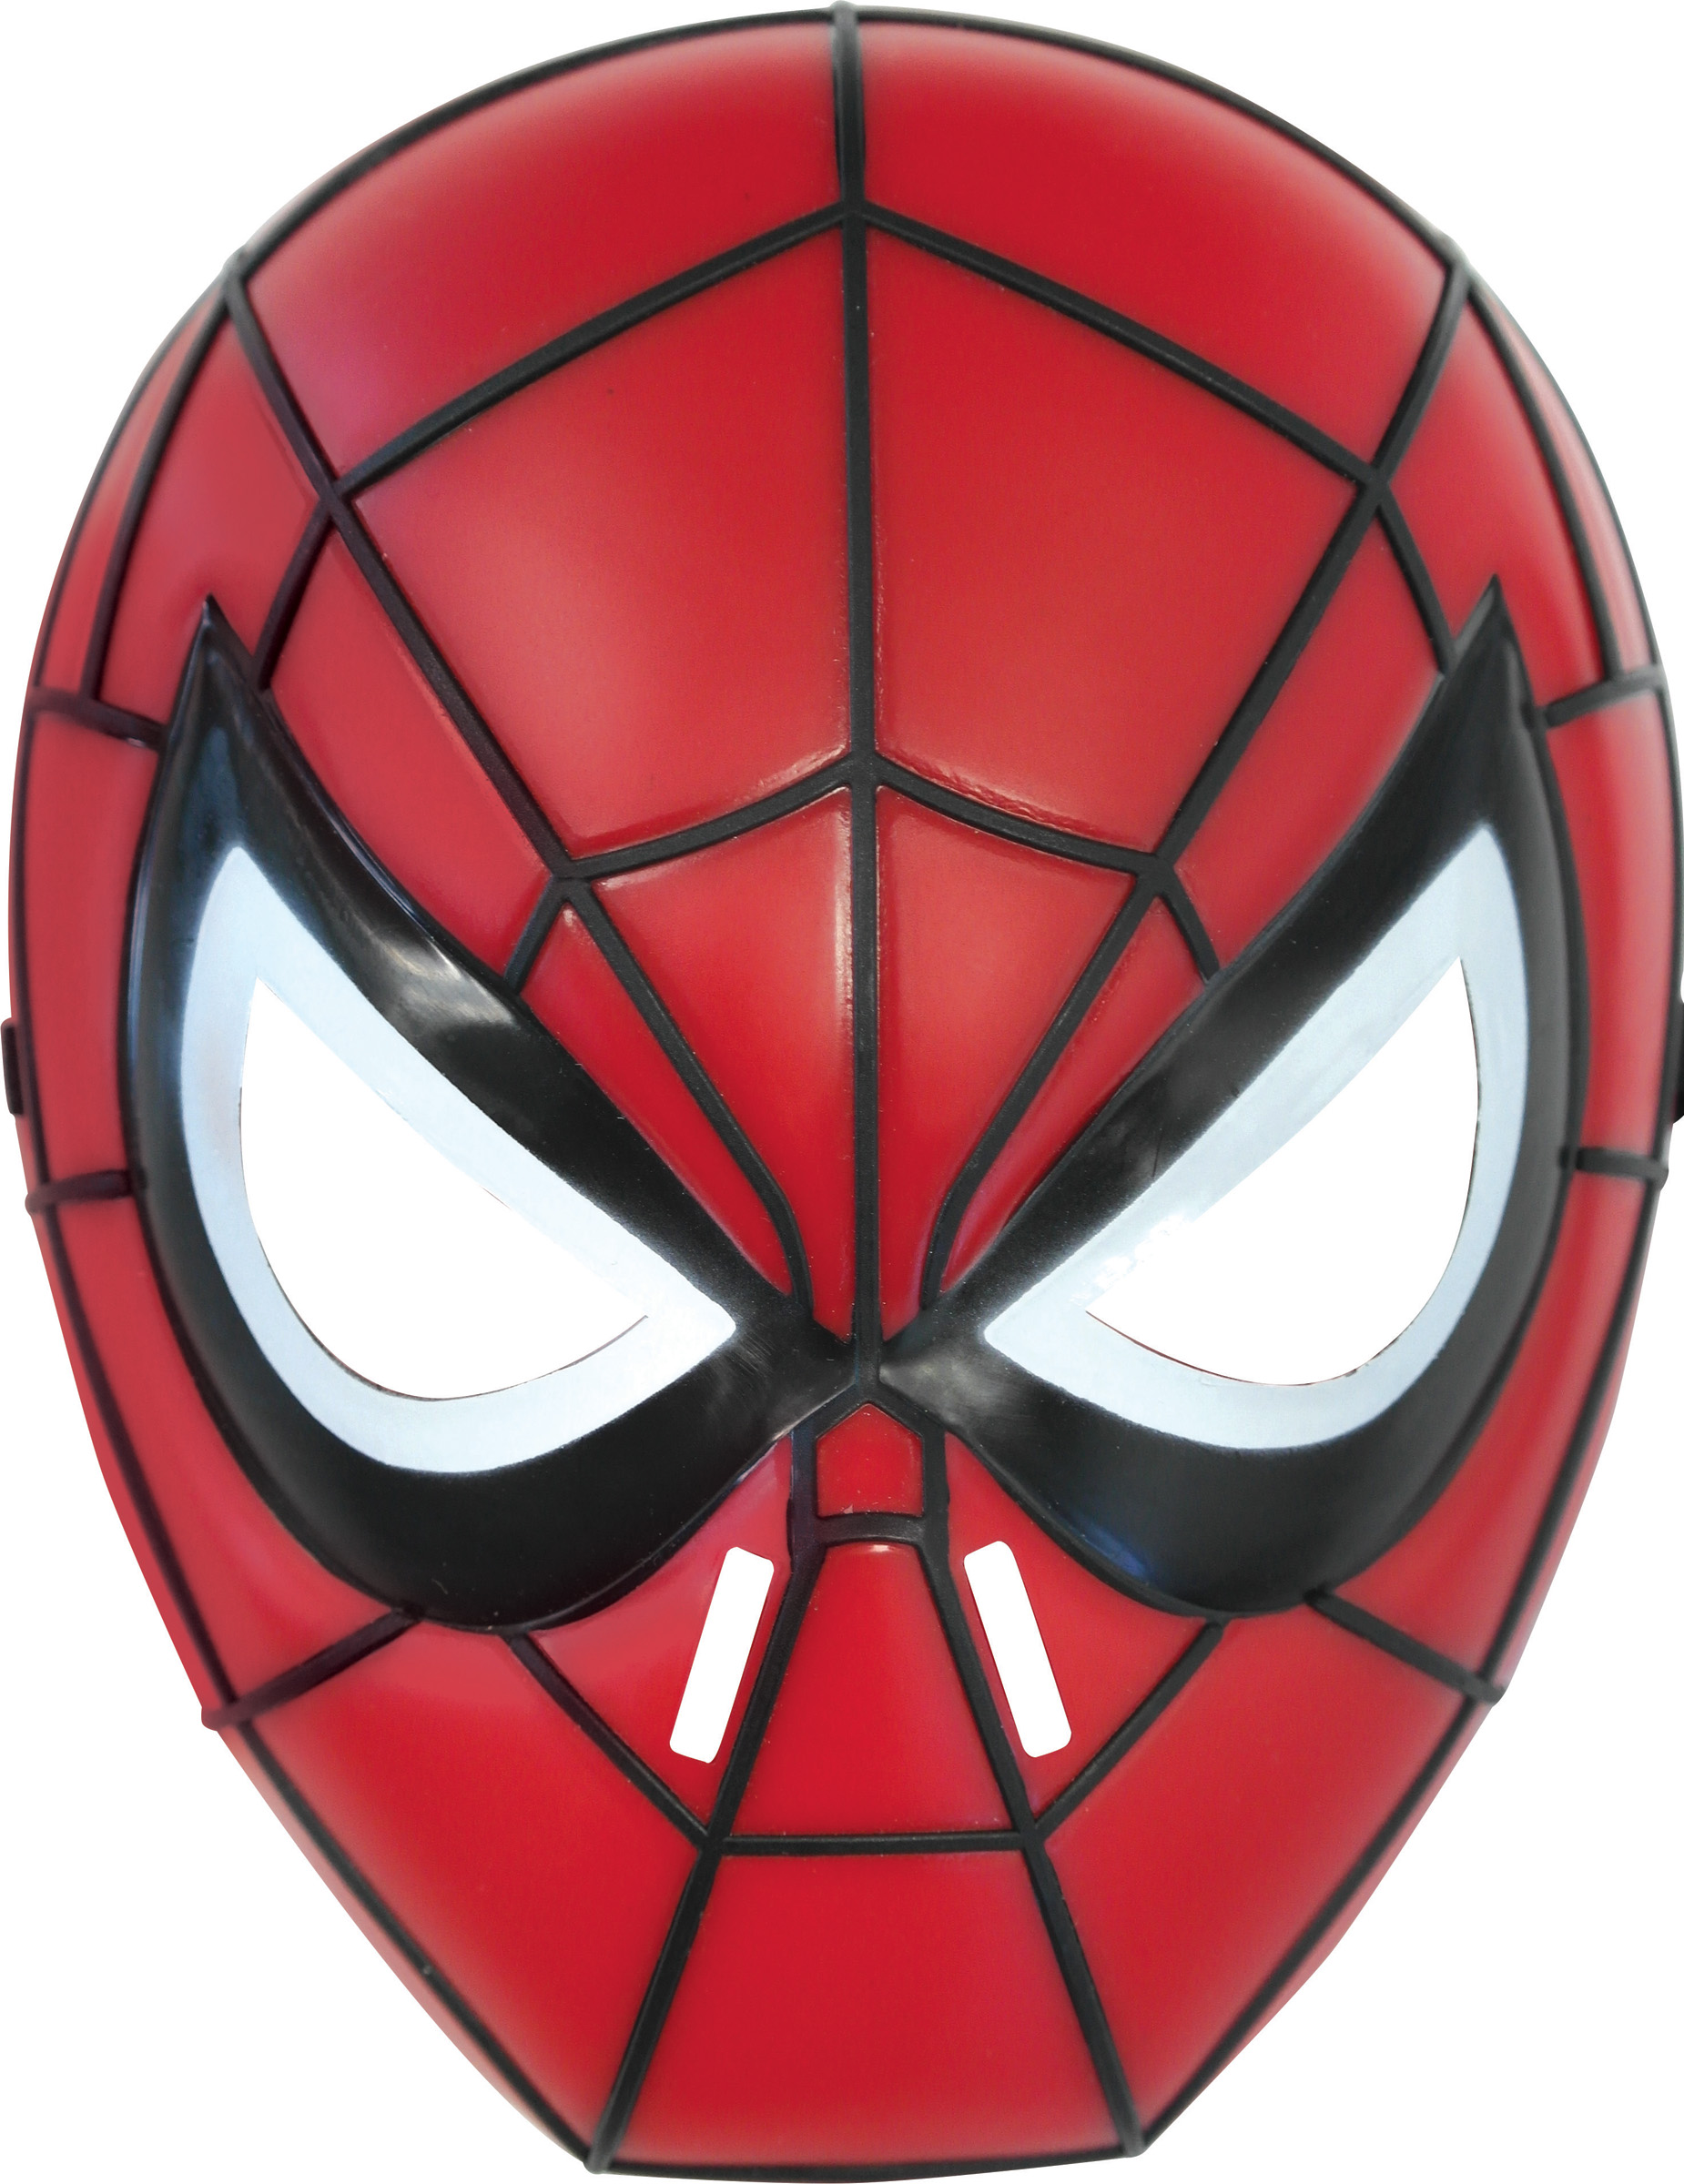 better another chance best prices Maschera di Spiderman Ultimate™ per bambino su VegaooParty, negozio di  articoli per feste